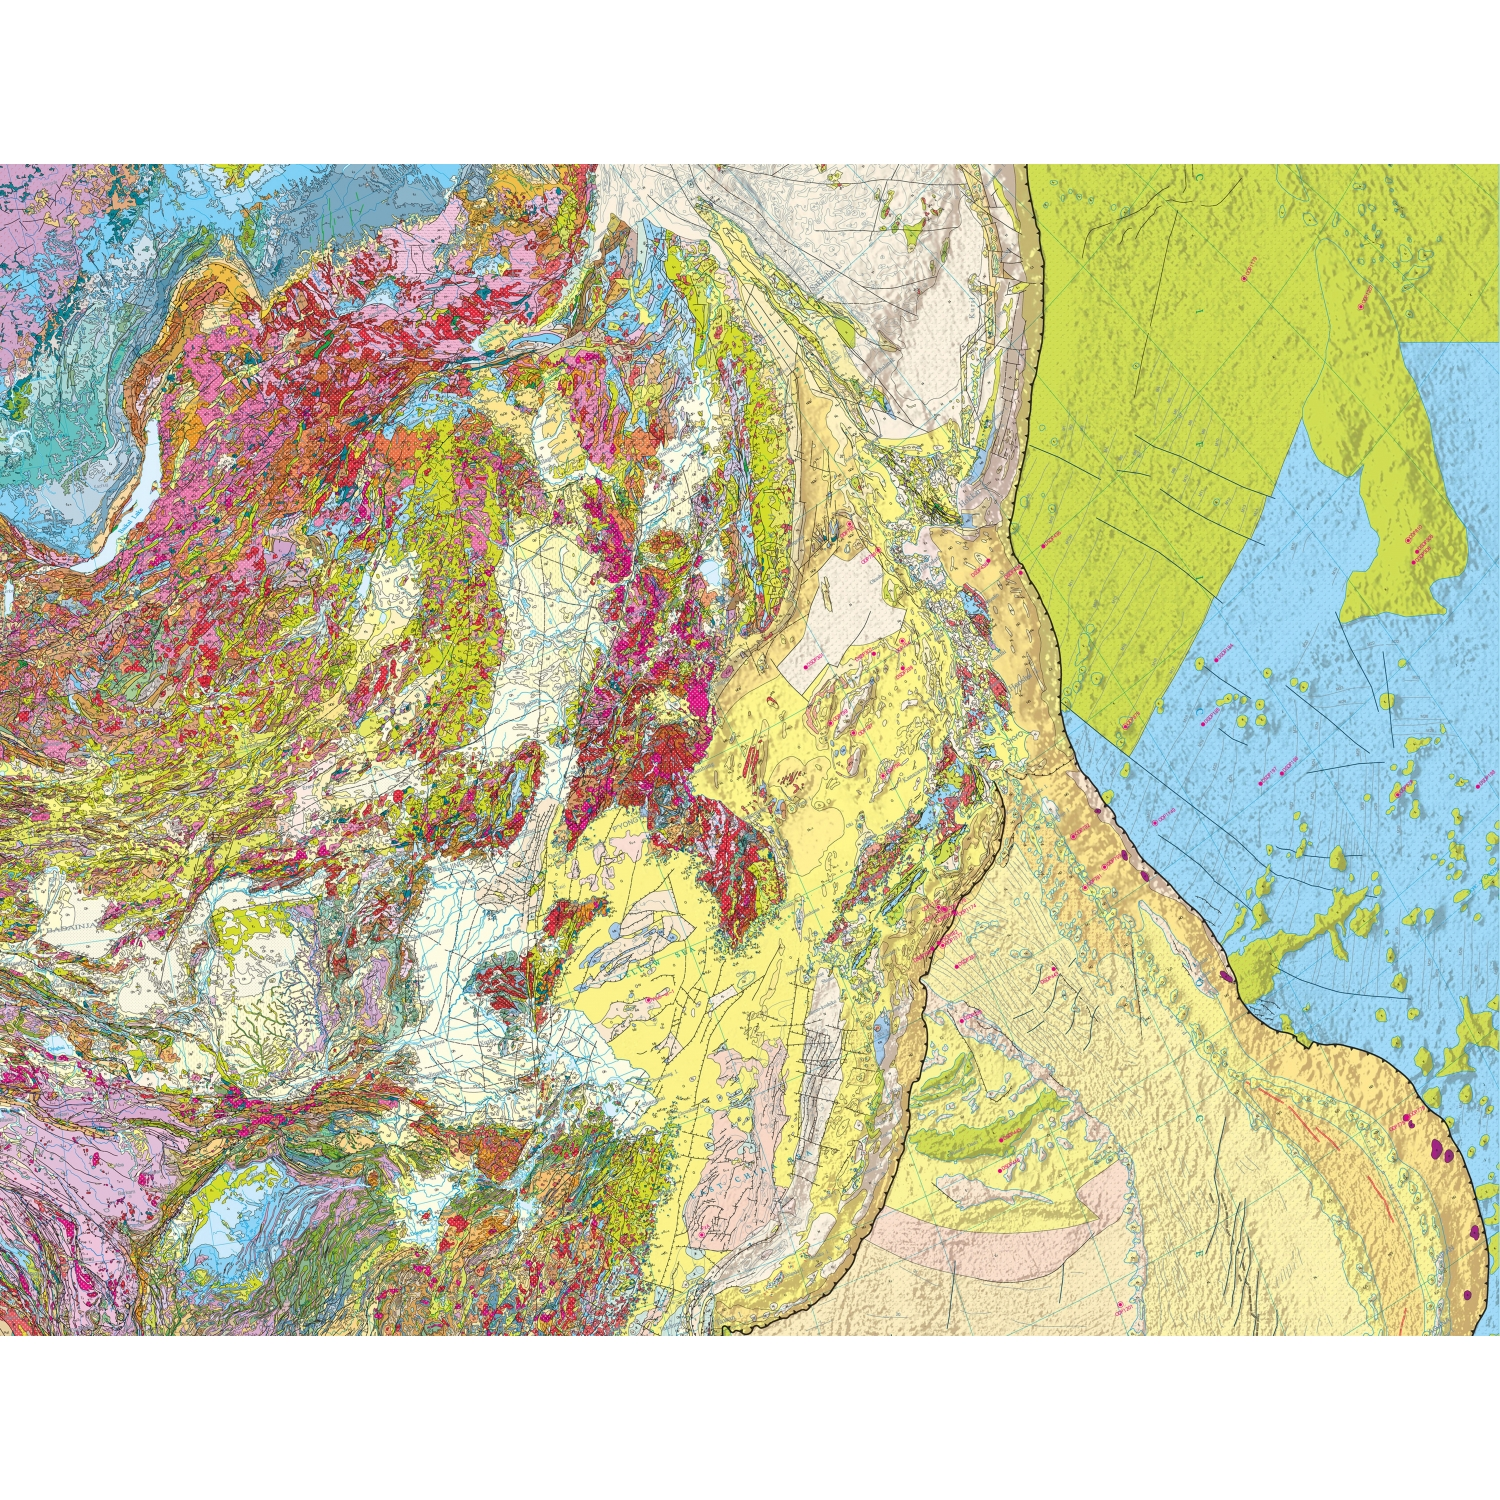 Atlas Map Of Asia.International Geological Map Of Asia At 1 5 M Igma Ccgm Cgmw